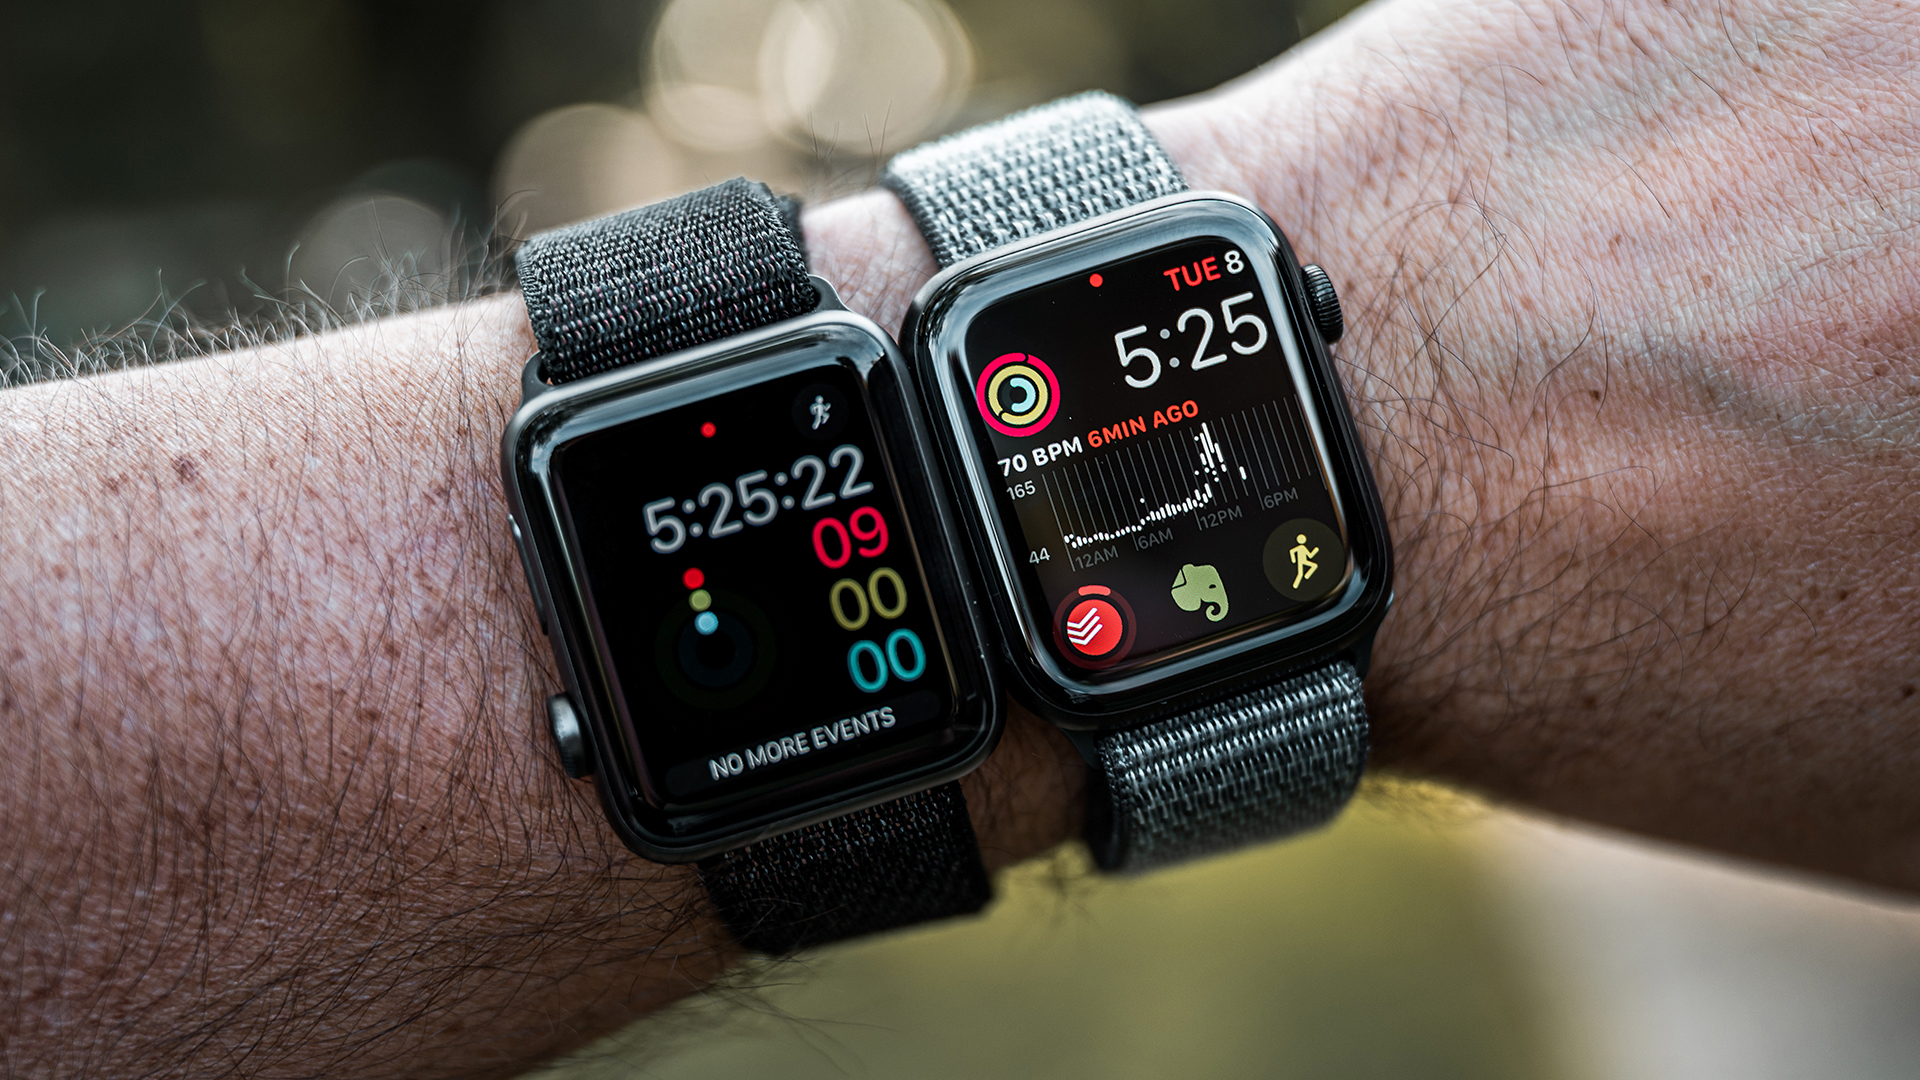 Apple Watch Series 3 vs Series 5